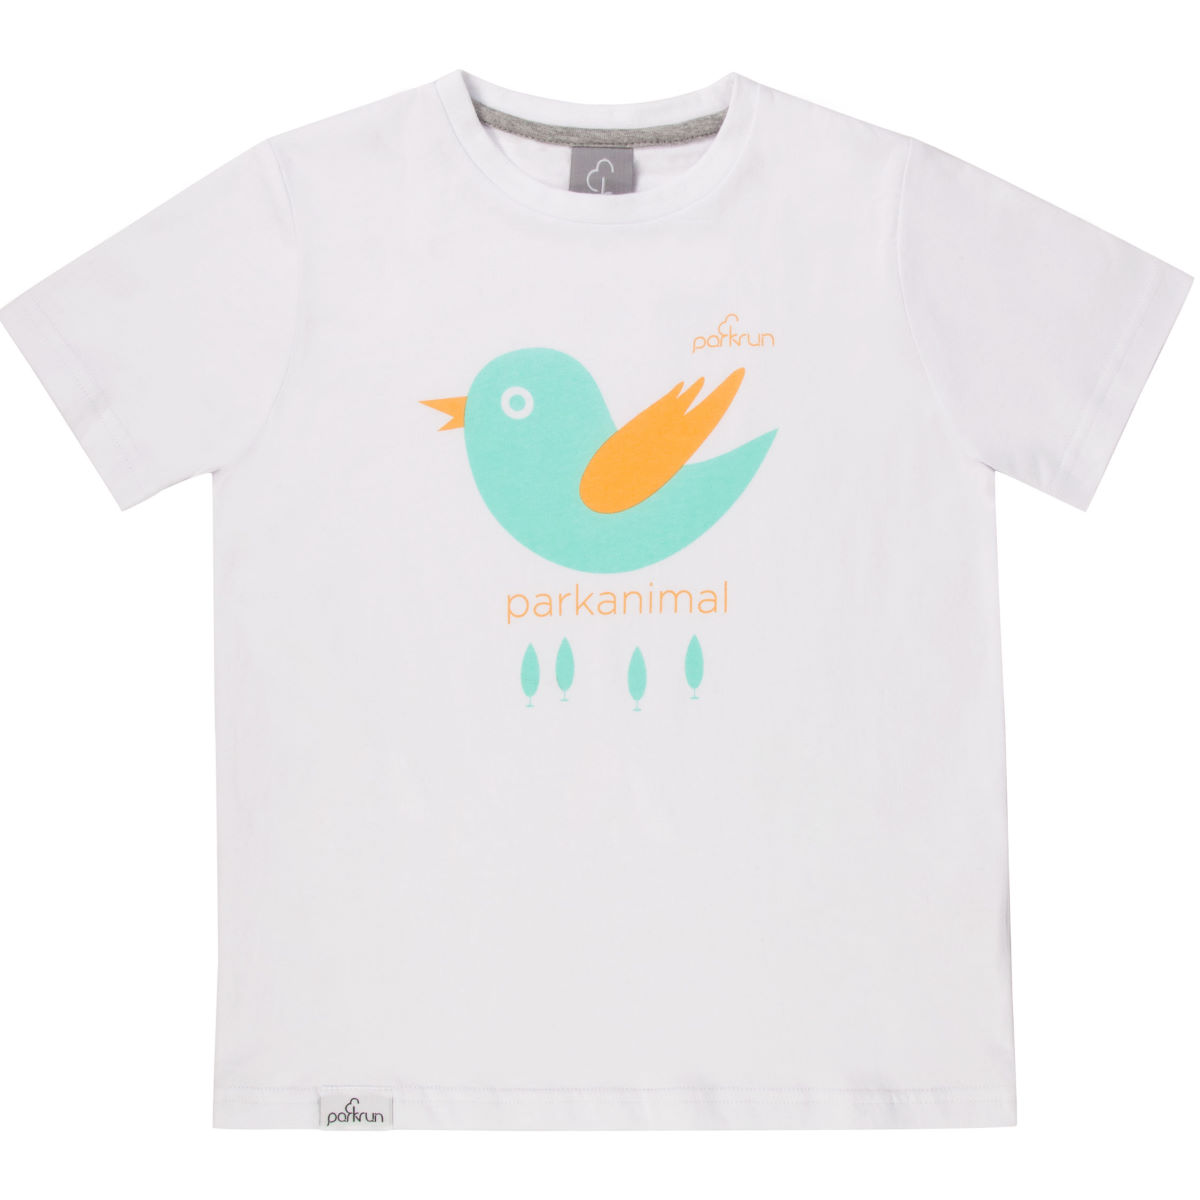 parkrun - Kids Birdie Graphic Tee - 7-8 Years Blanc